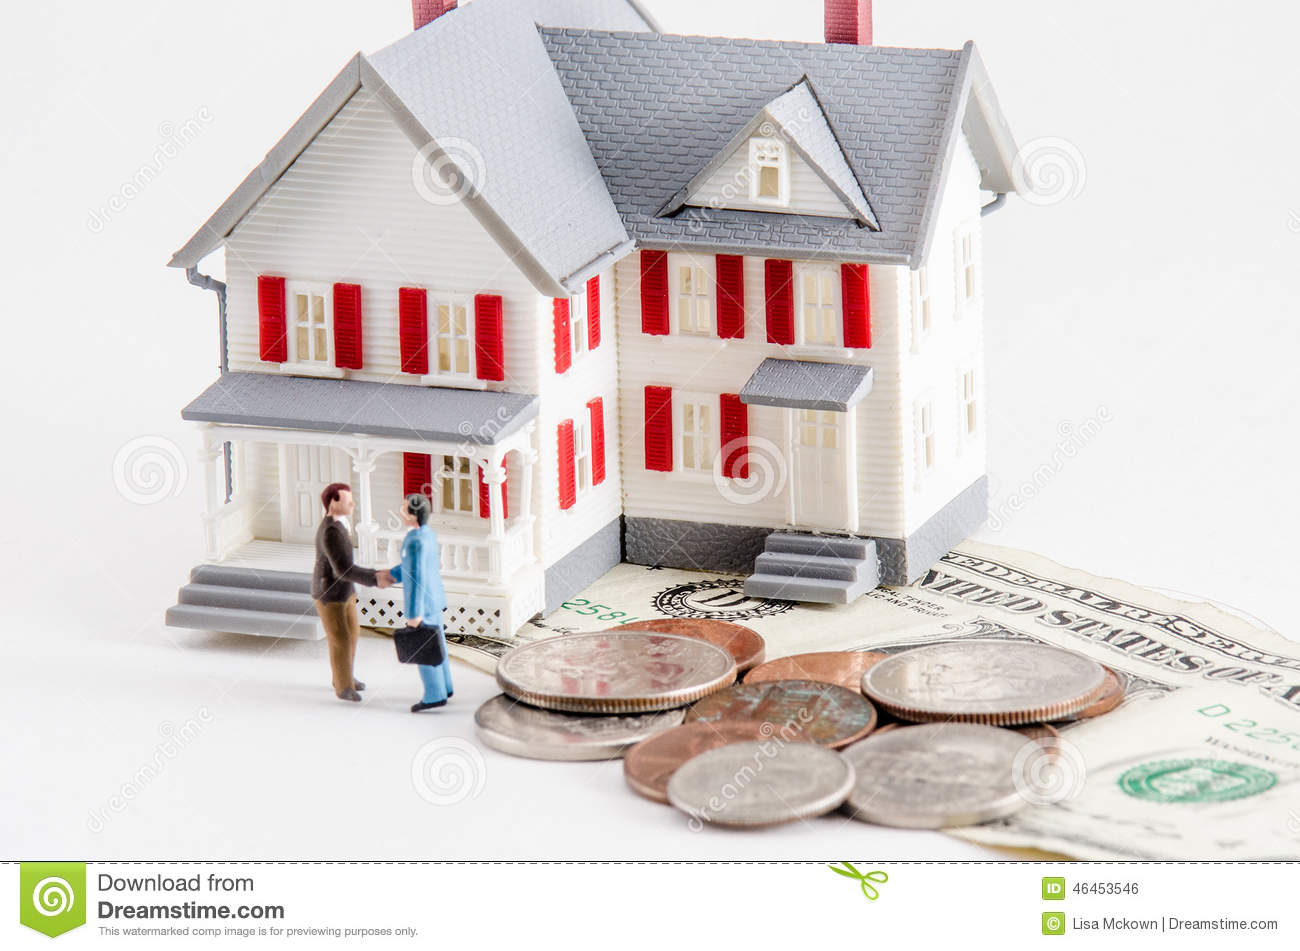 Buy Or Sell A House Stock Photo Image 46453546 On How To Buy A House With